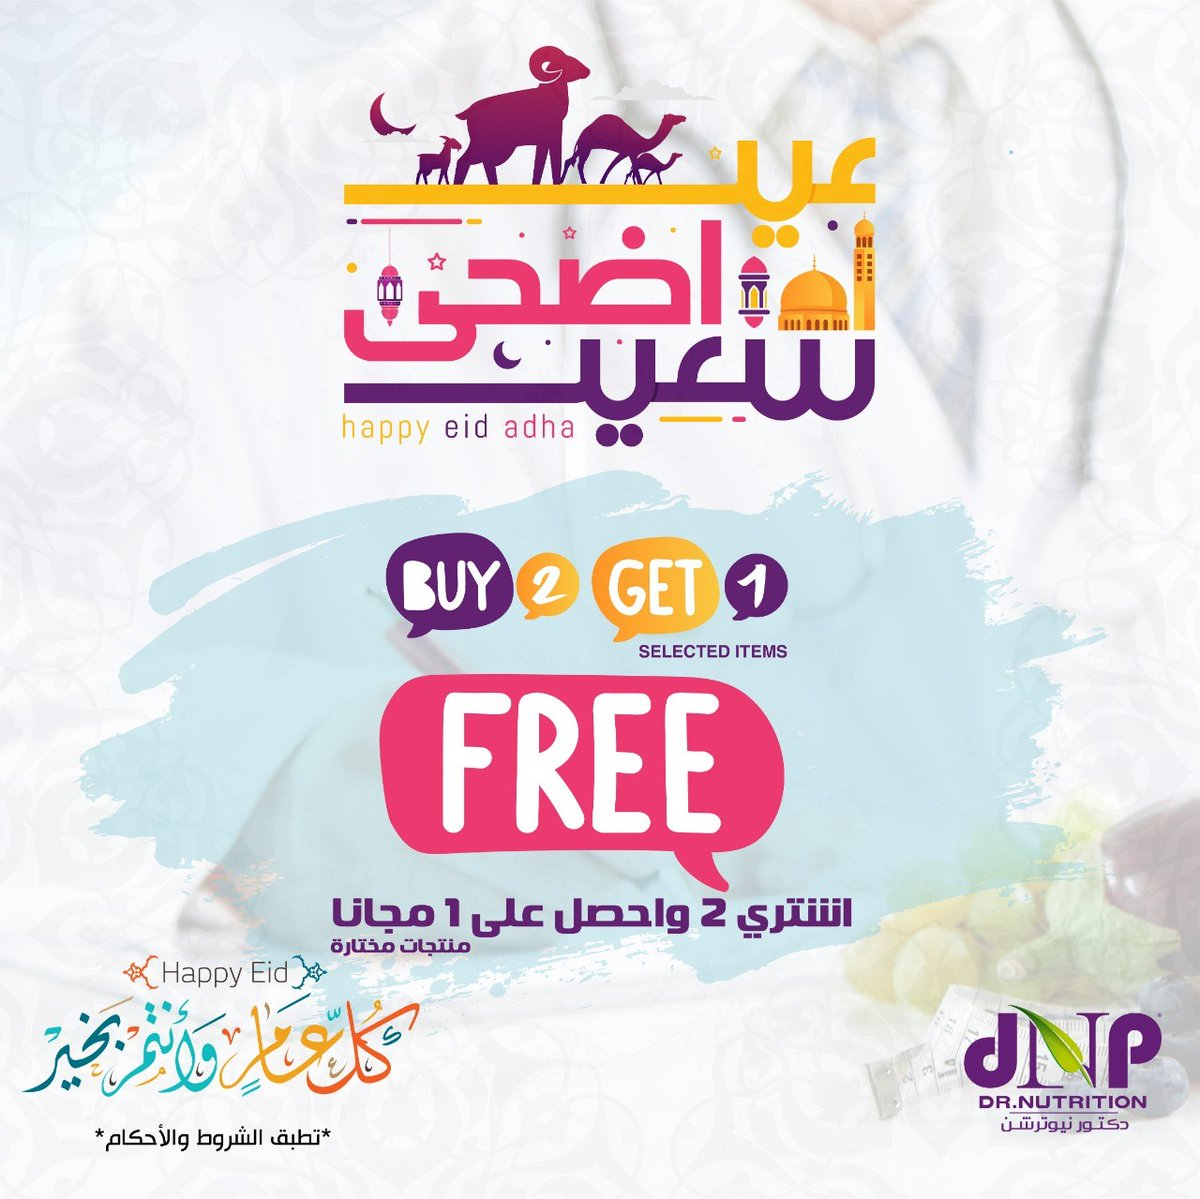 Check out Dr.nutrition's Eid-Al-Adha offers Buy Two Get One Free Up to 75% discount Grab it as fast as you can, this offer for a few days . for more information, please call 092225277 https://t.co/5w5Zg8iICV